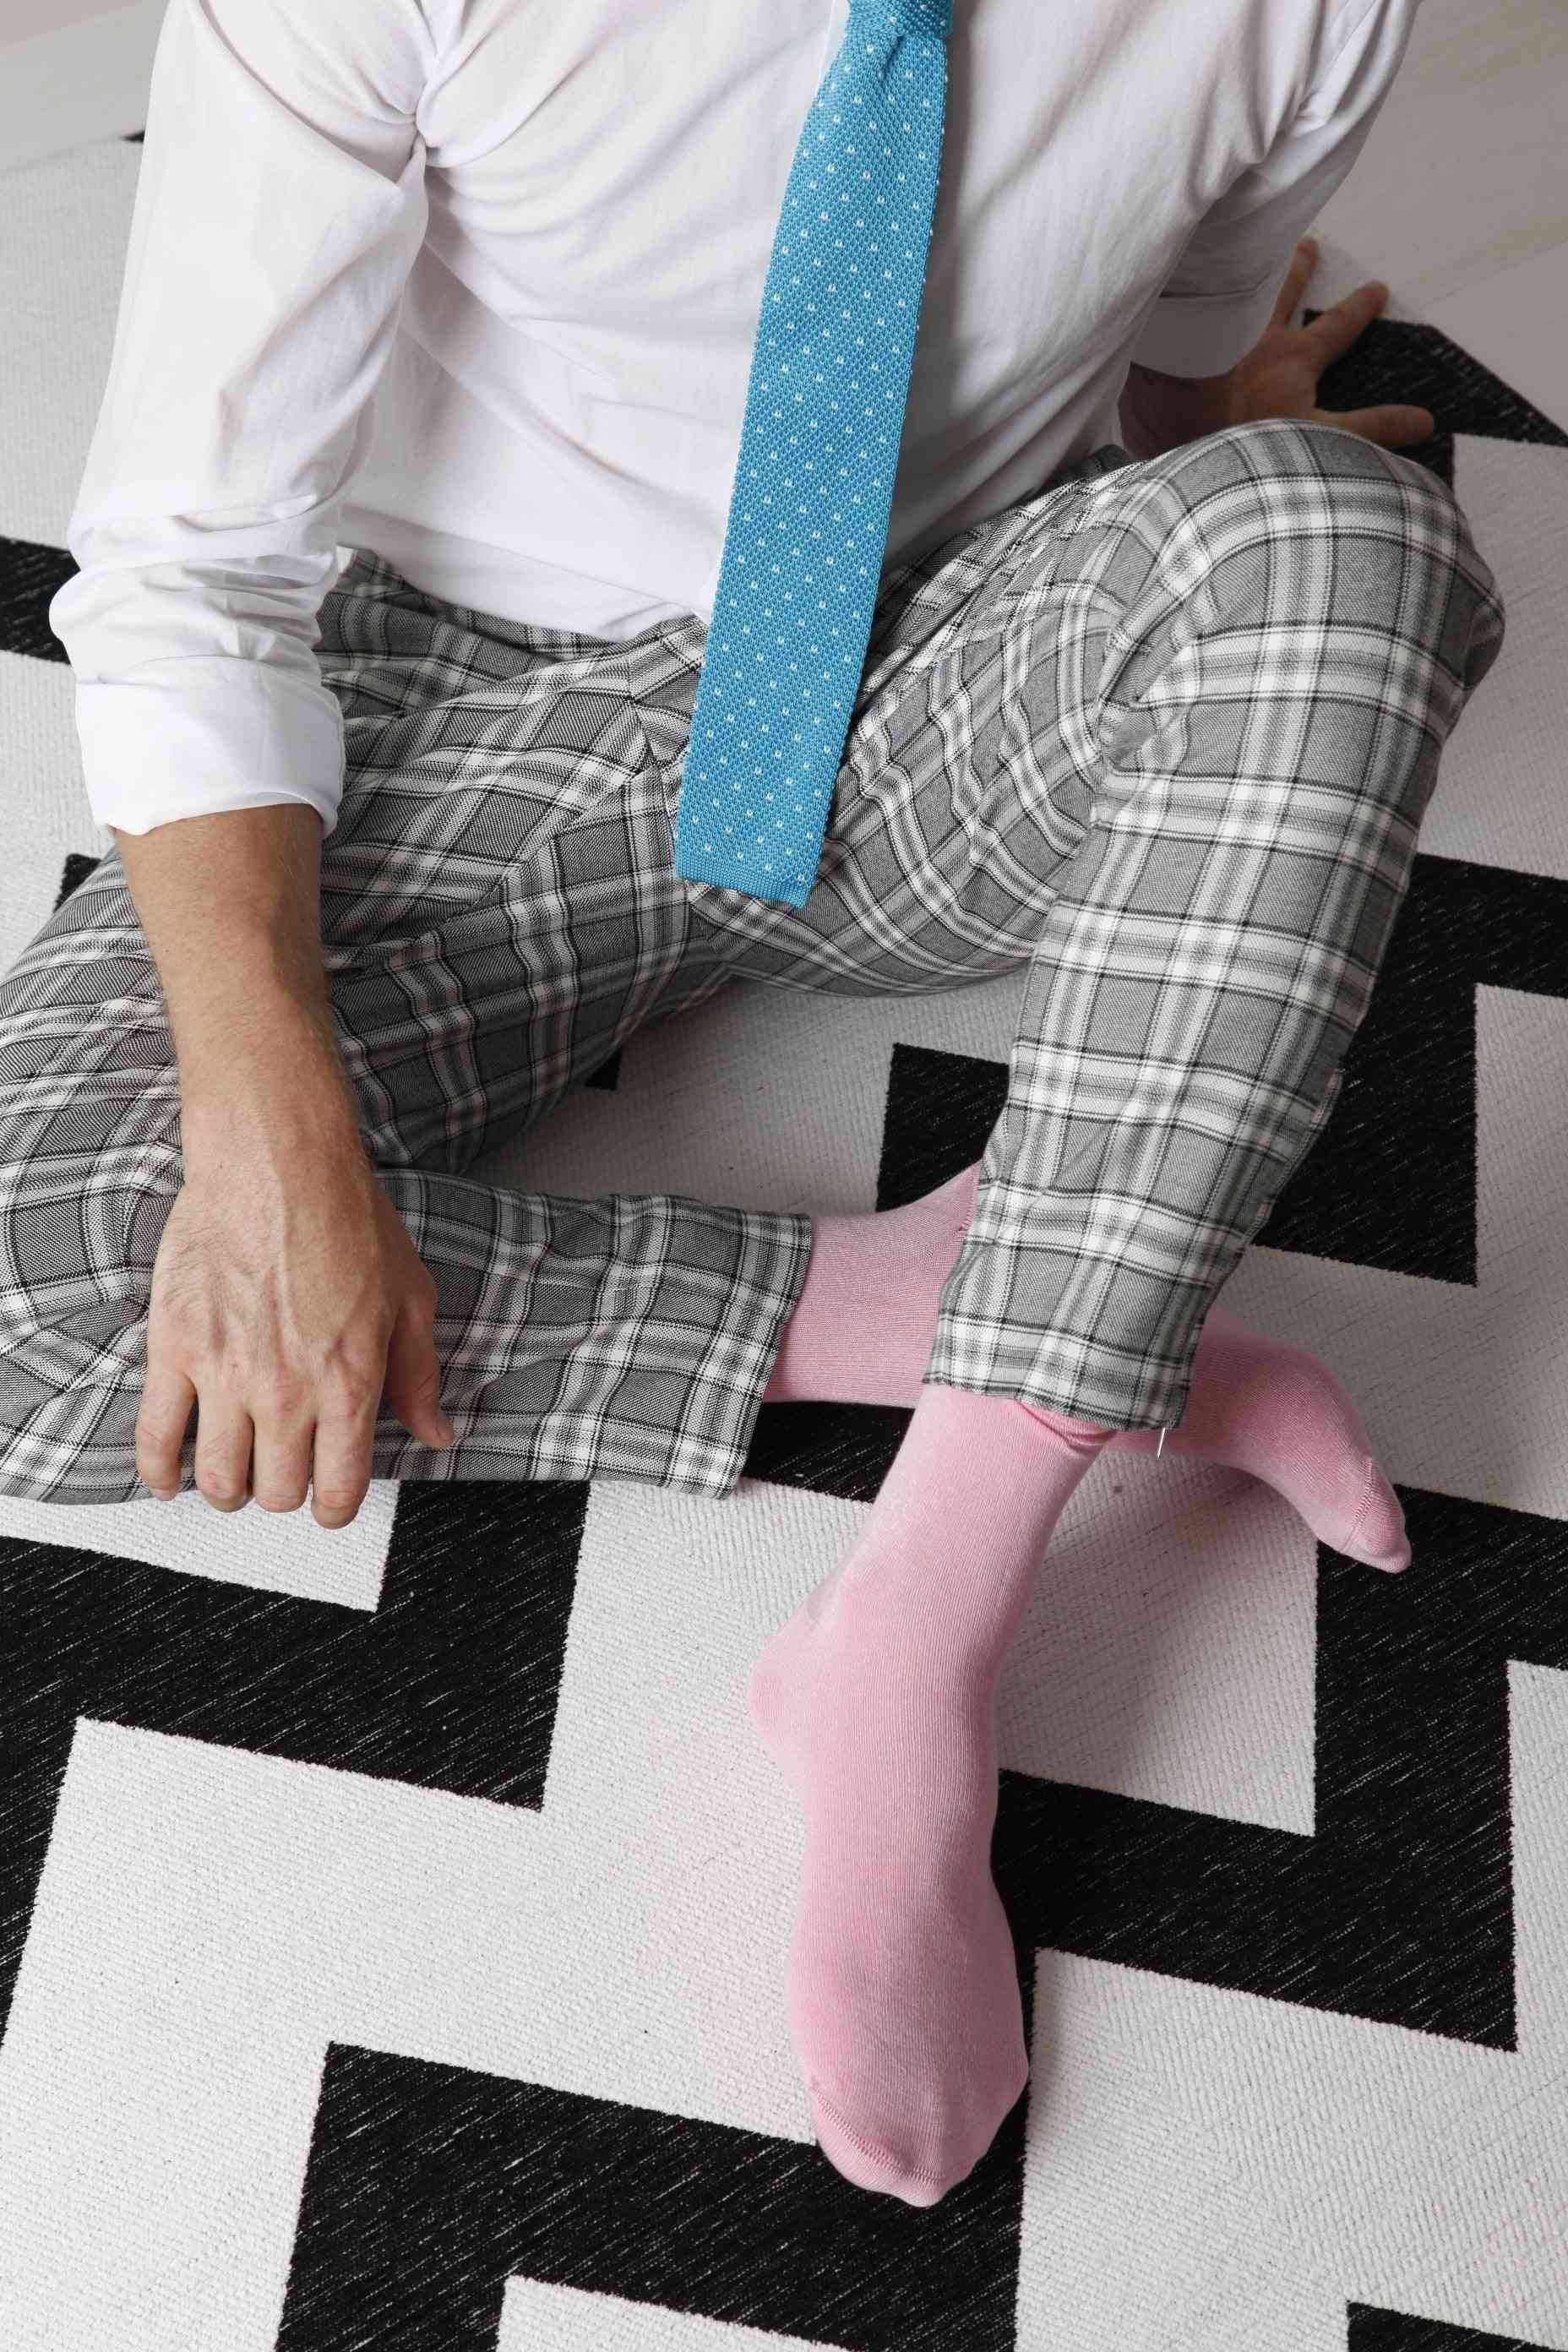 Viscose Socks And Knitted Tie